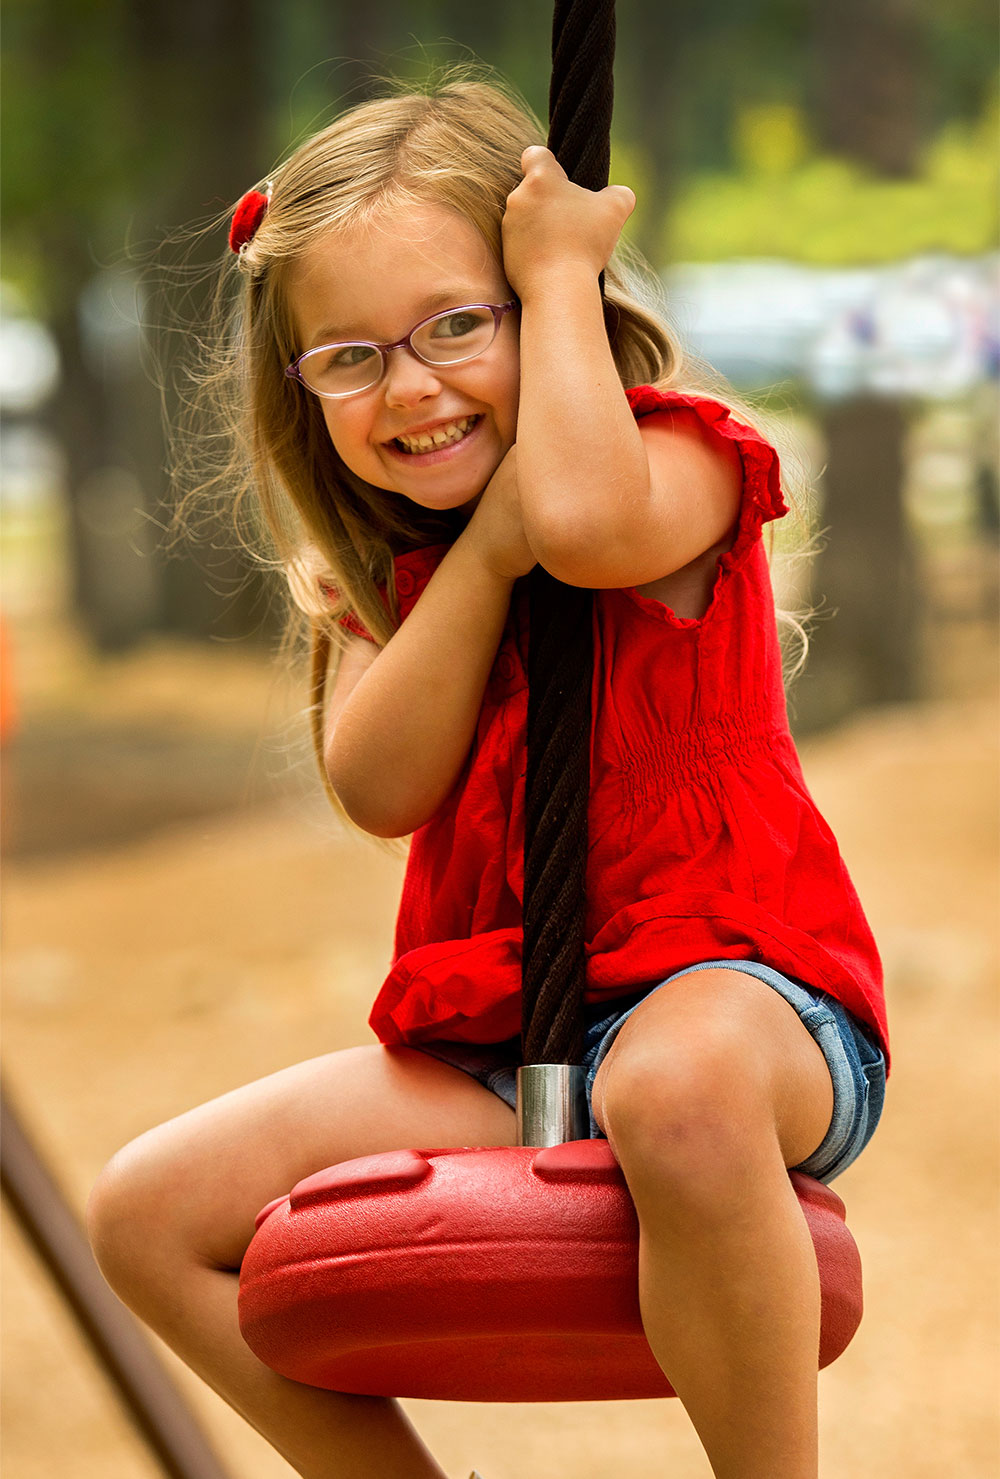 young, smiling girl at a playground — fitness marketing work